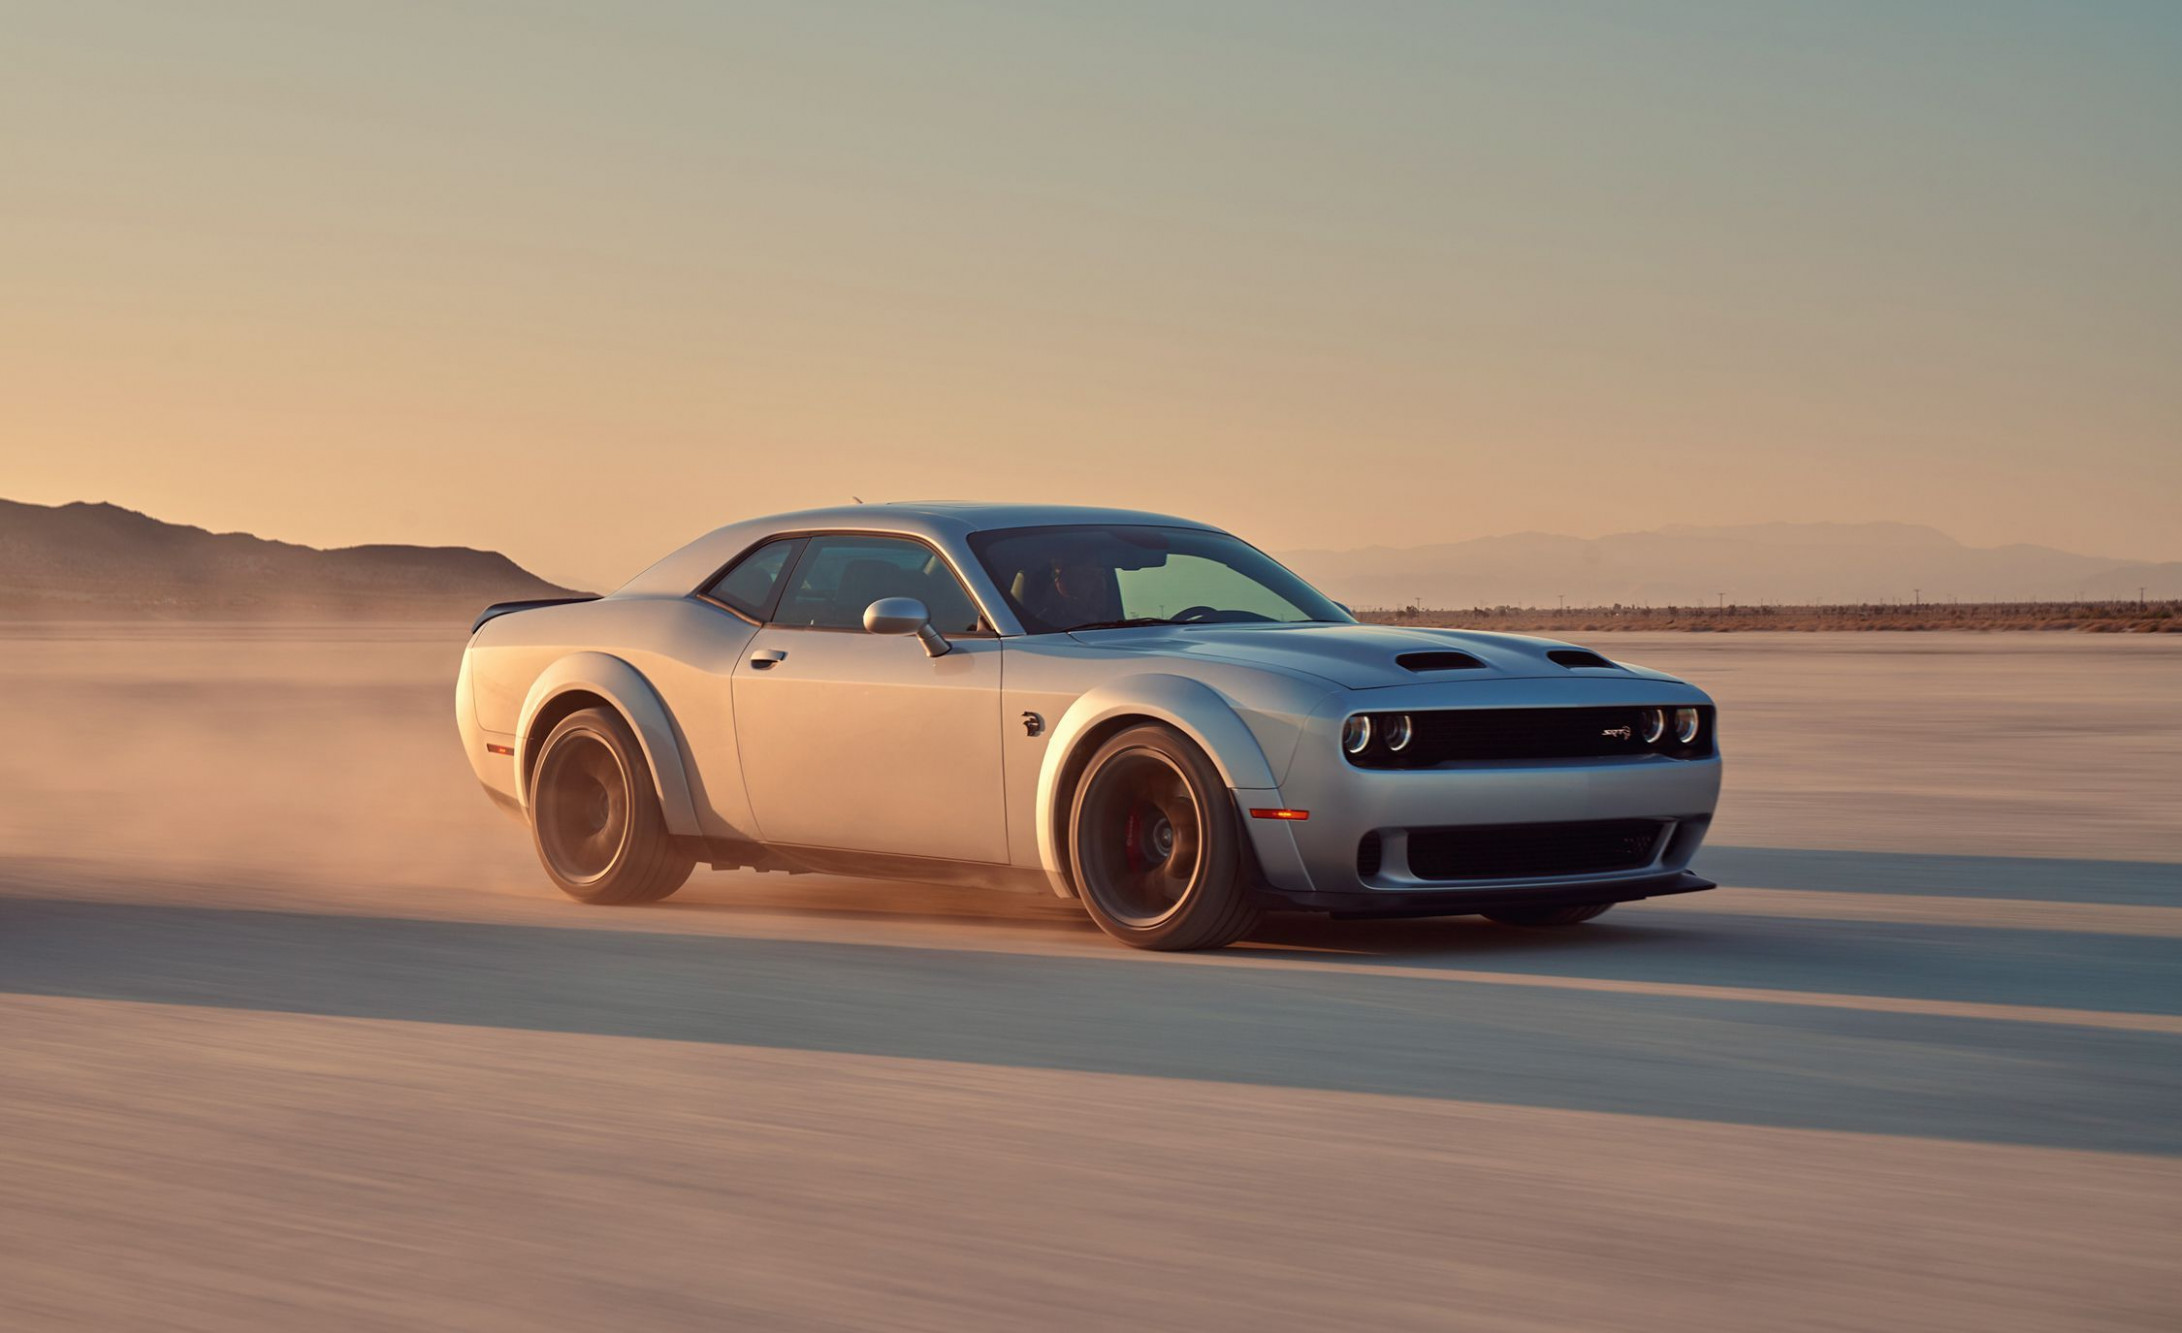 11 Dodge Challenger SRT Hellcat Review, Pricing, and Specs